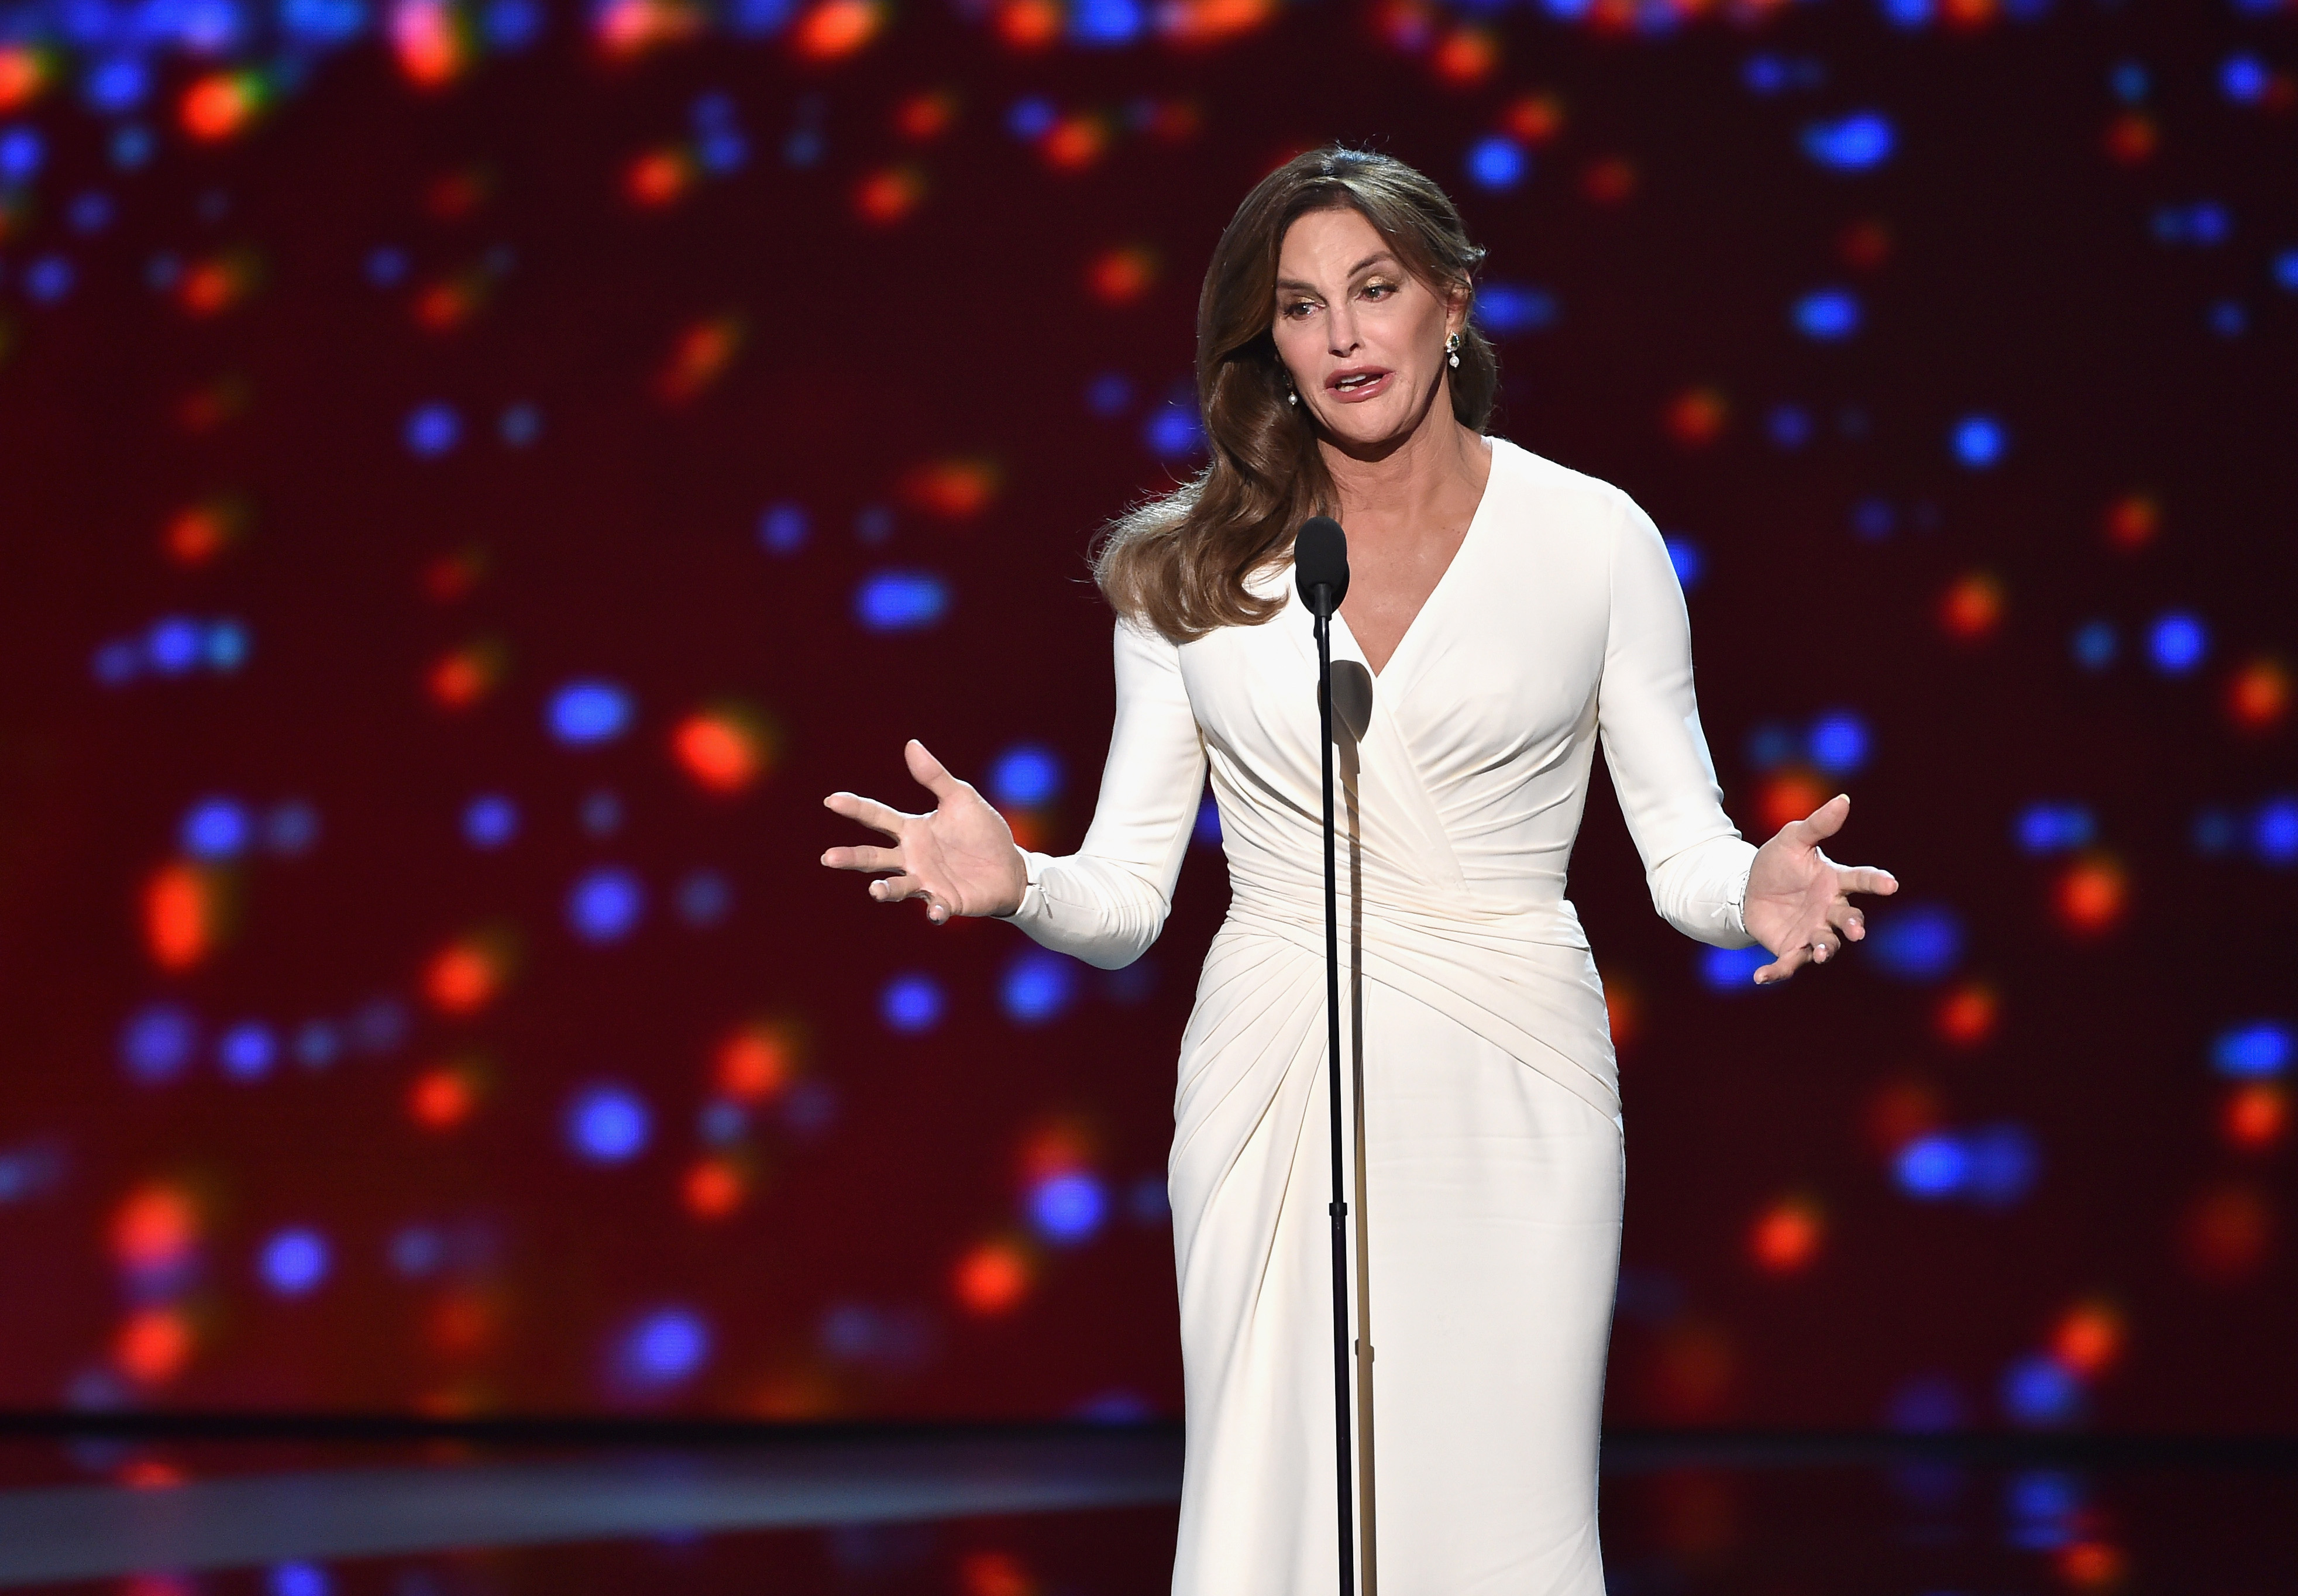 Honoree Caitlyn Jenner accepts the Arthur Ashe Courage Award onstage during The 2015 ESPYS at Microsoft Theater on July 15, 2015